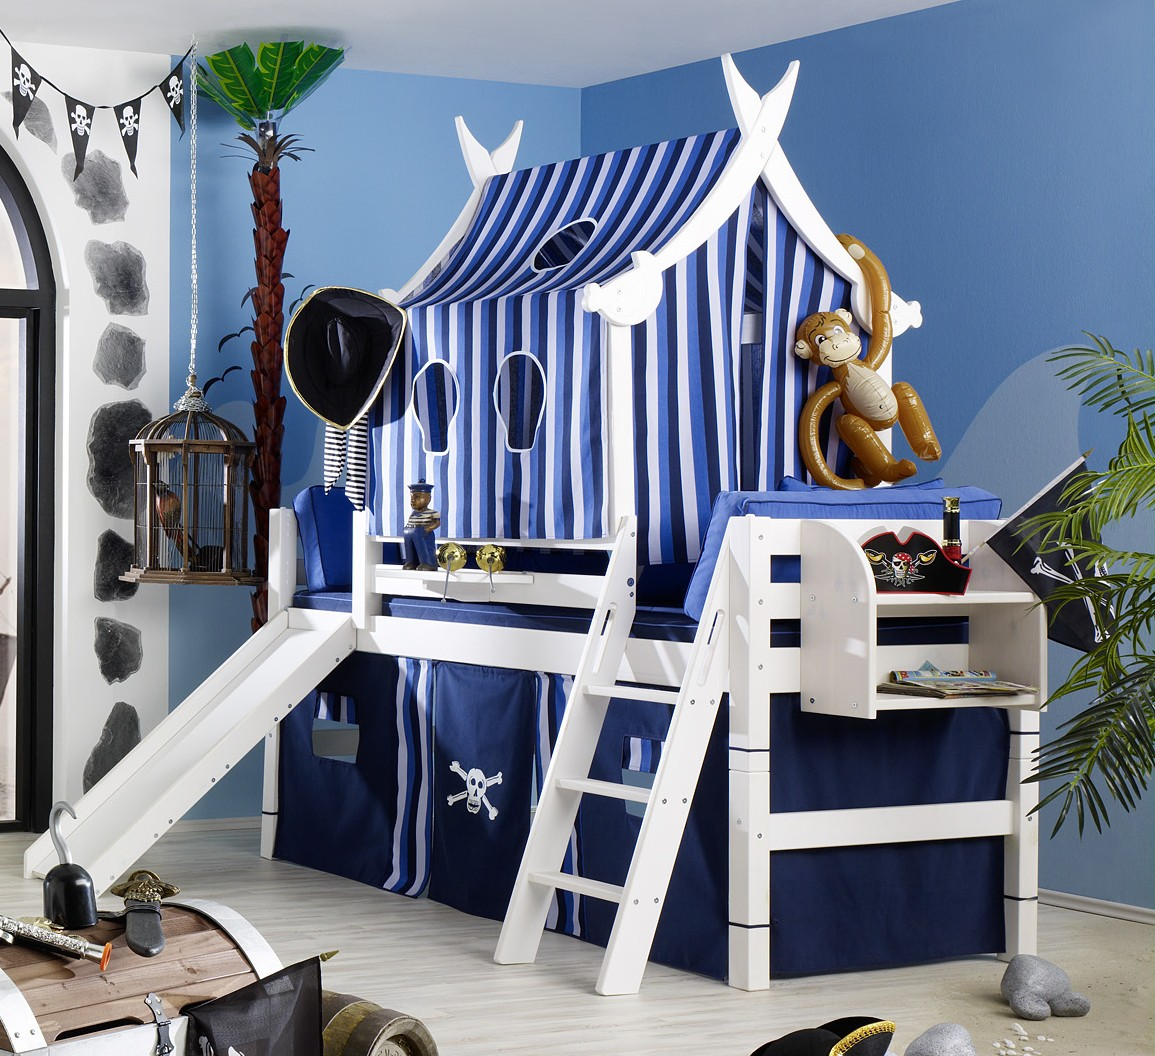 piratenbett pirat bett kinderbett abenteuerbett schiff kiefer massiv weiss ebay. Black Bedroom Furniture Sets. Home Design Ideas